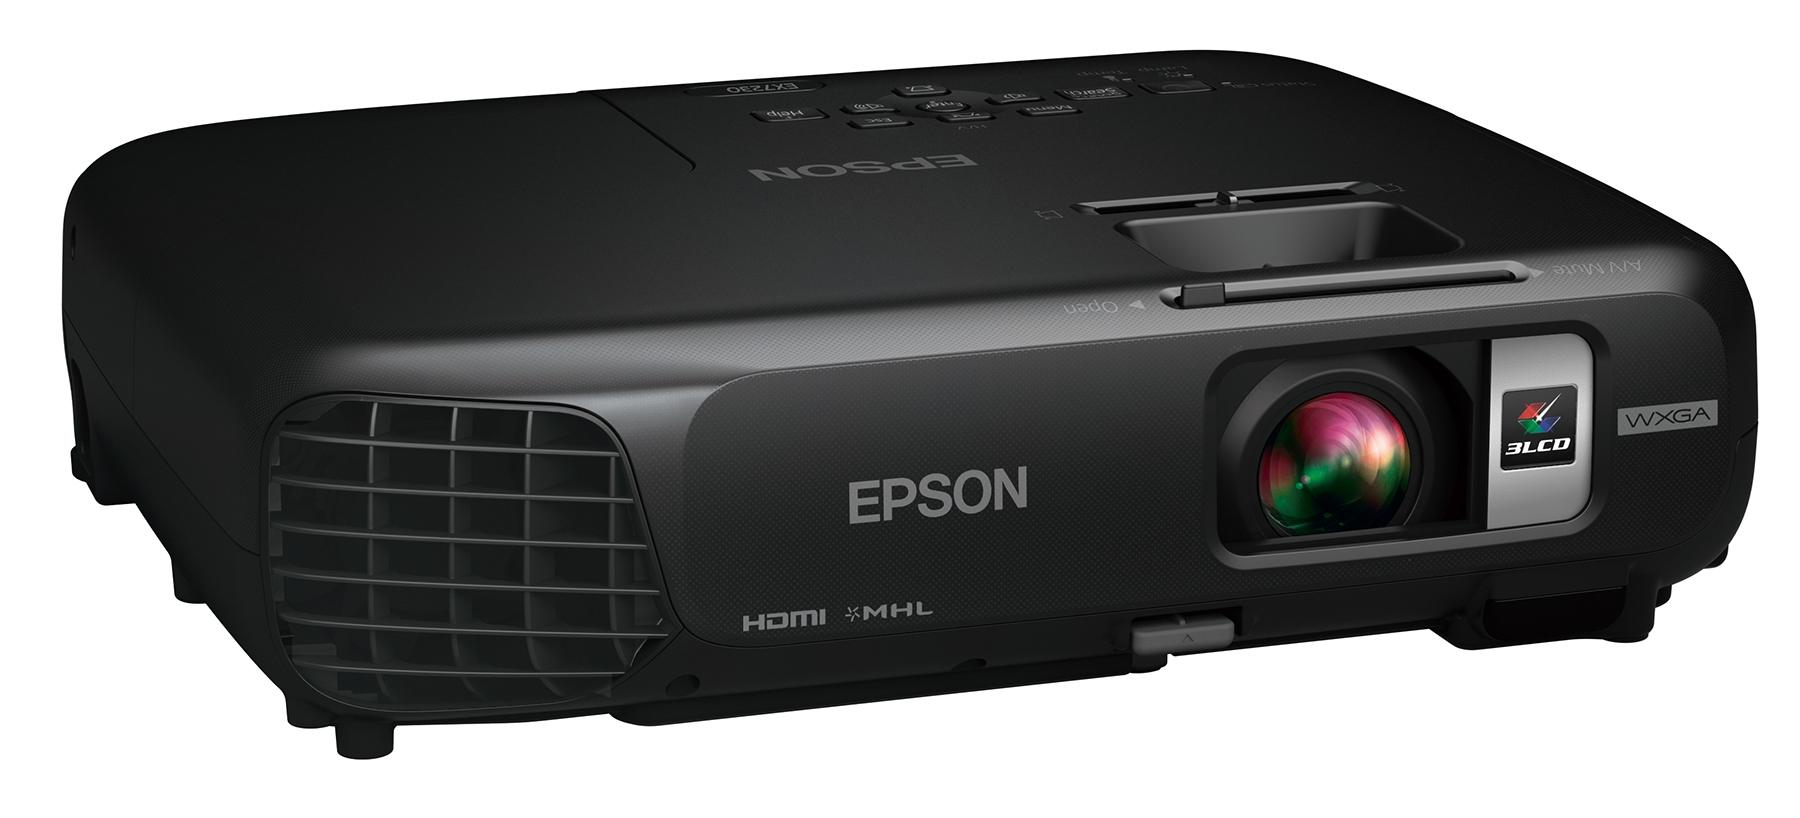 Epson EX7230_Pro RT_ANG